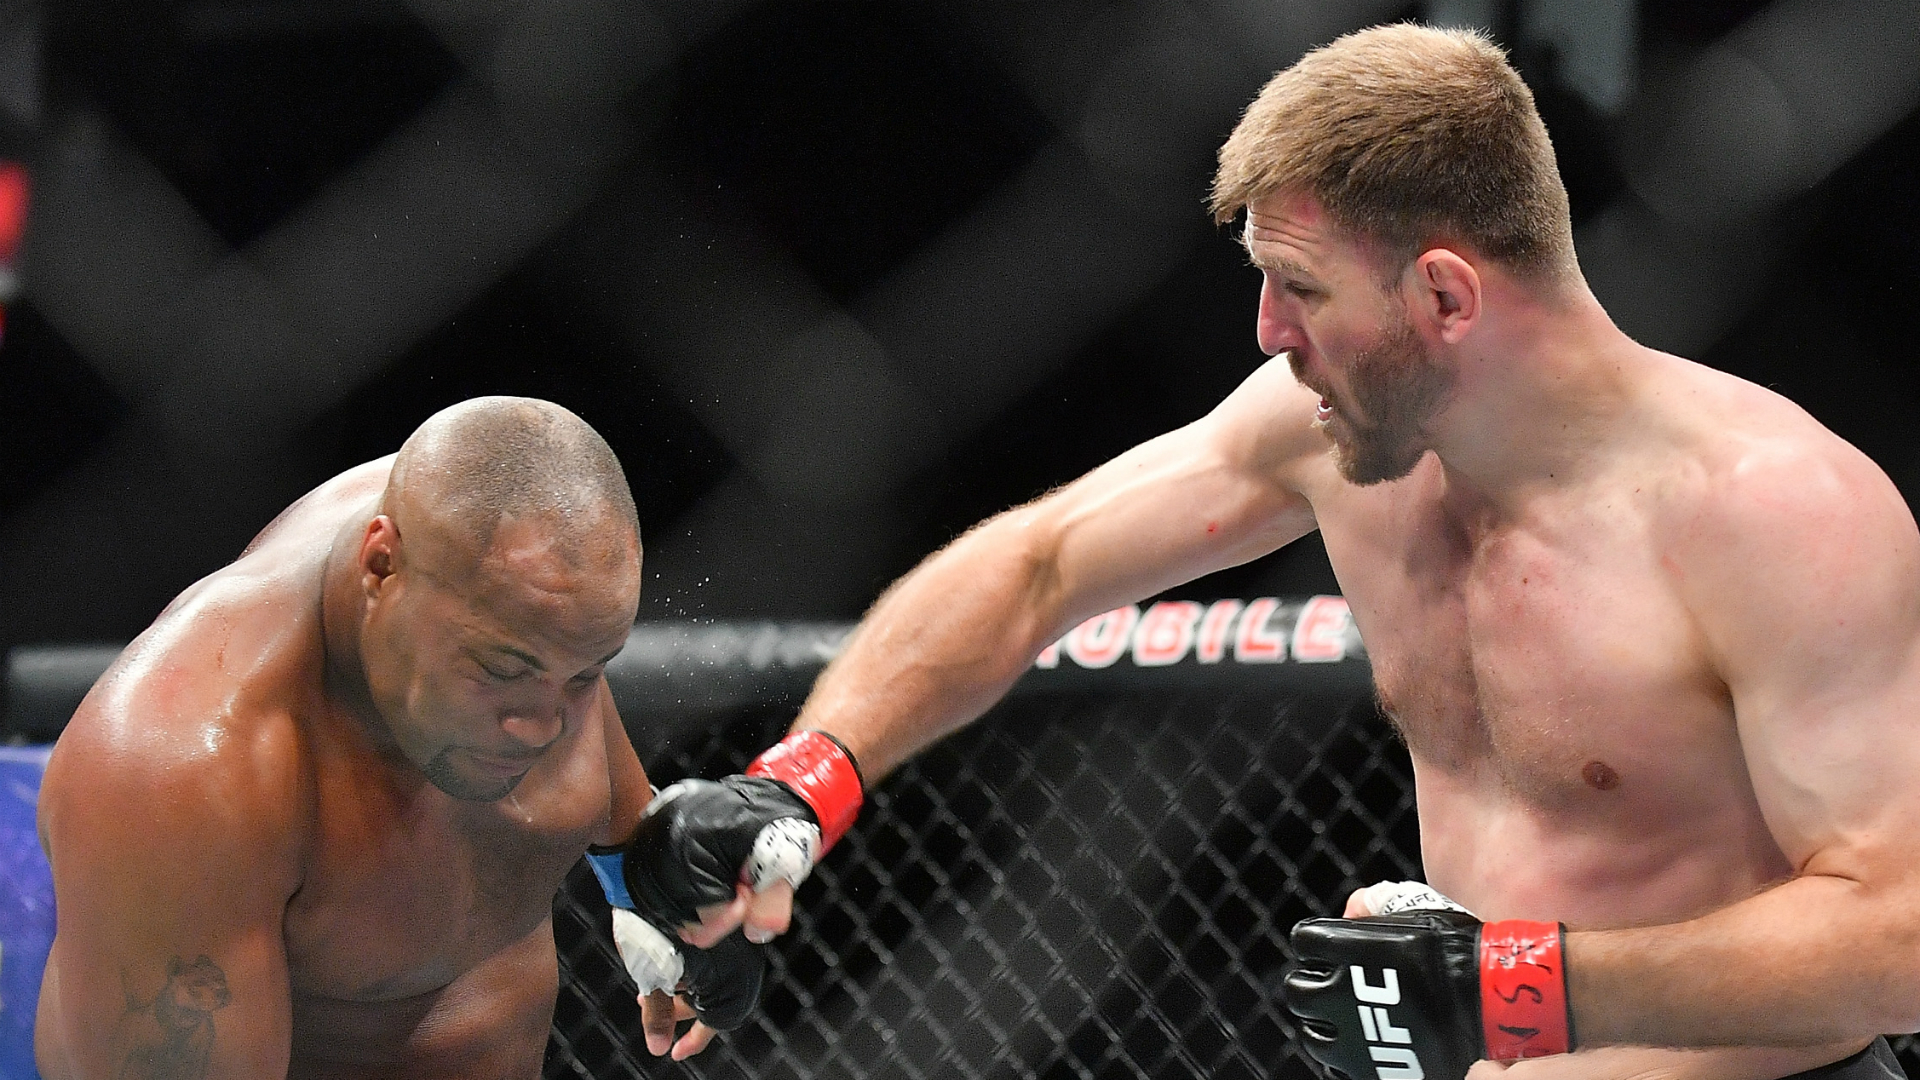 Miocic knocks out Cormier to recapture title at UFC 241